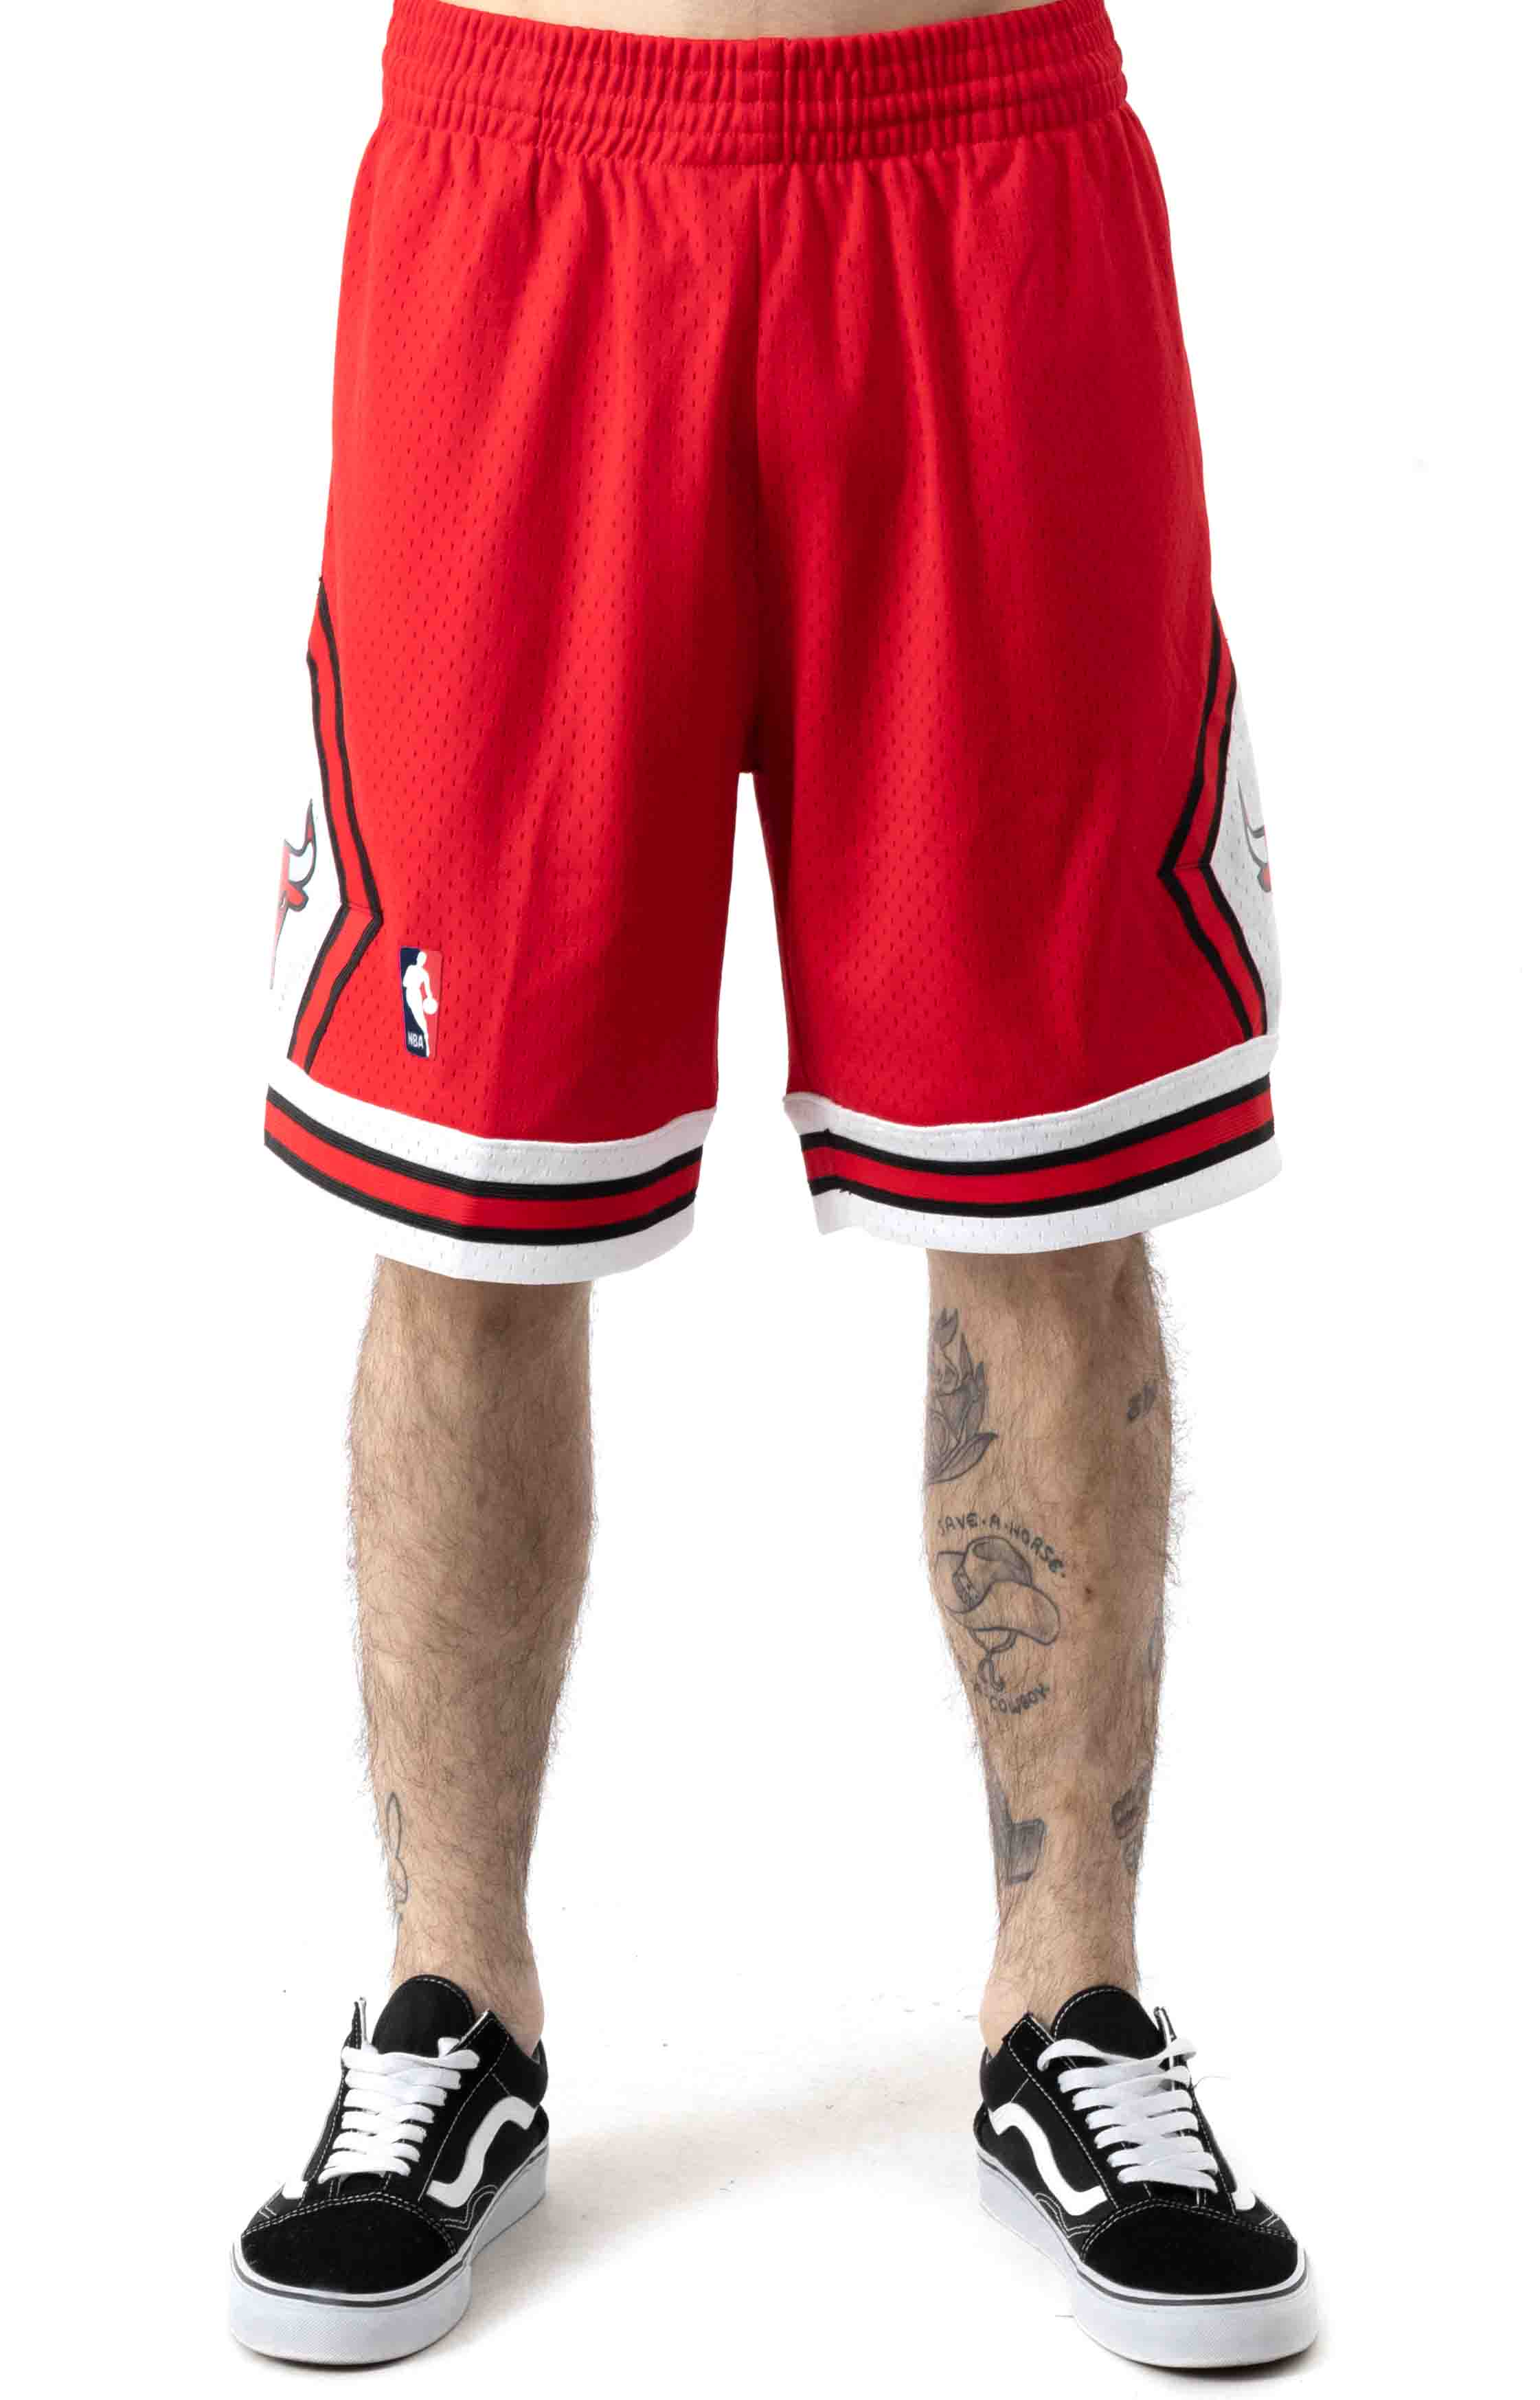 NBA Swingman Road Shorts - Bulls 97-98 2